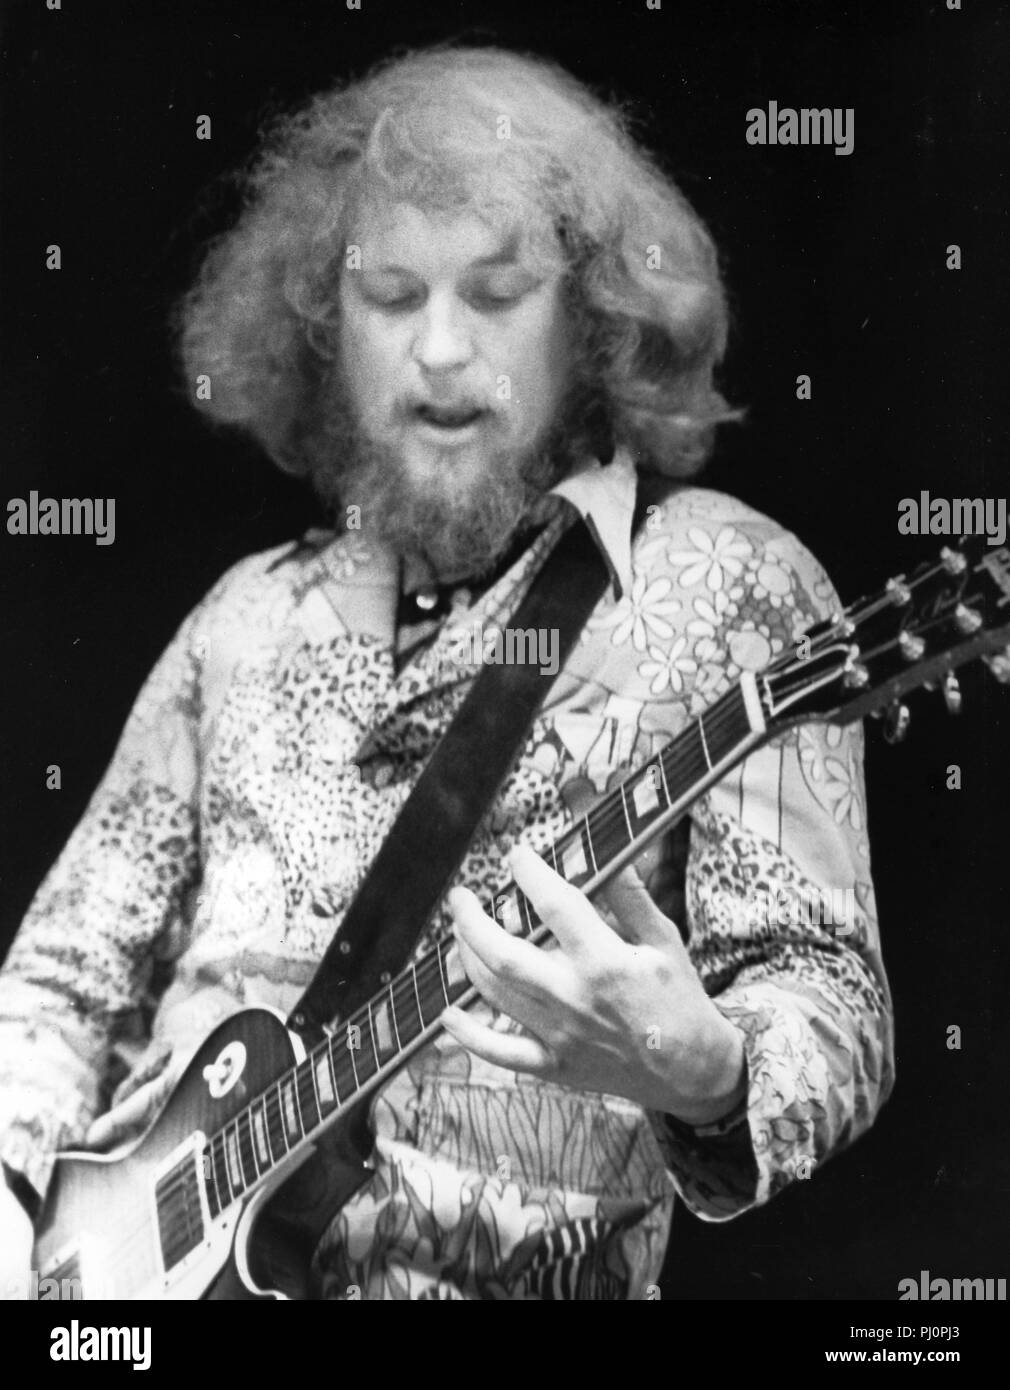 martin barre jethro tull 1978 stock photo 217605979 alamy. Black Bedroom Furniture Sets. Home Design Ideas